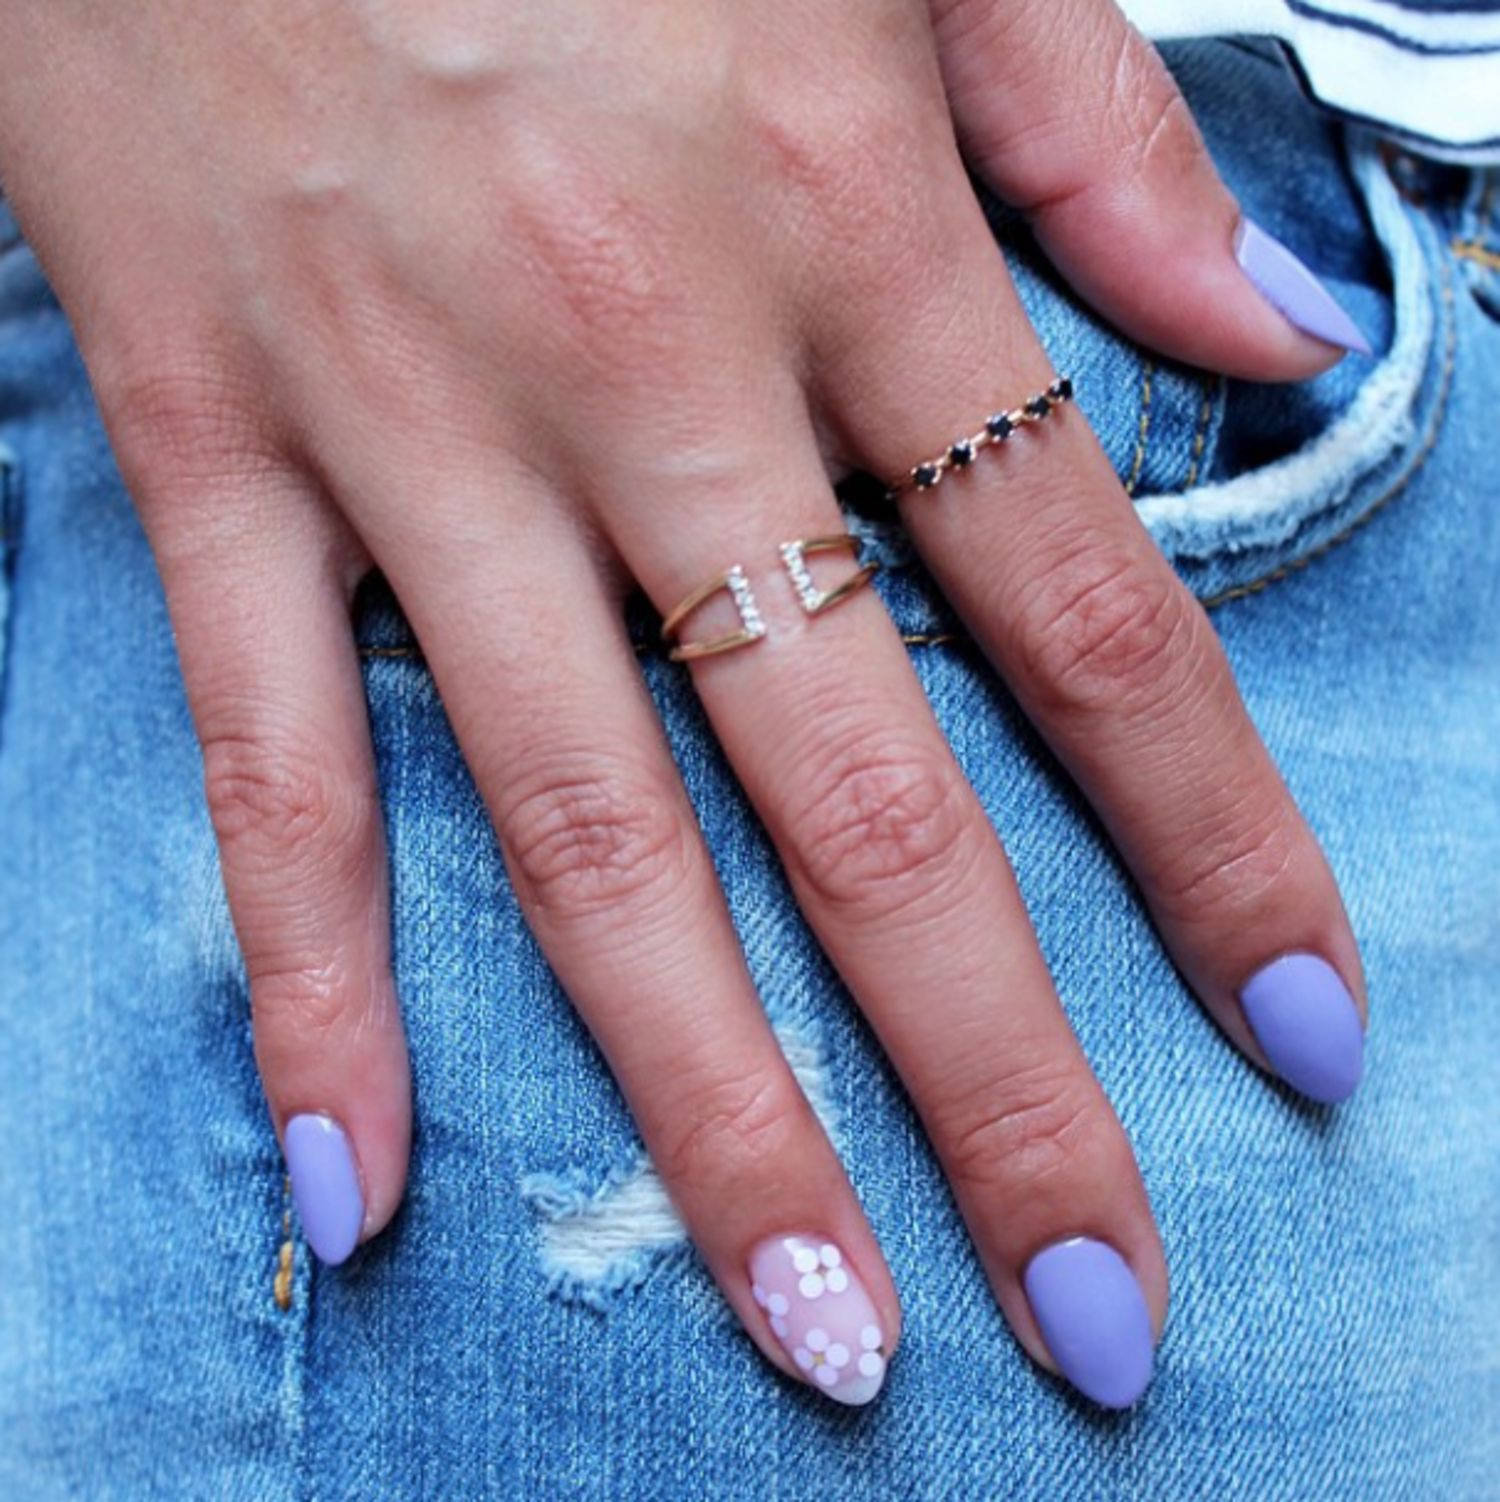 Top 10 Best Spring Summer Nail Art Colors Trends 2018-2019